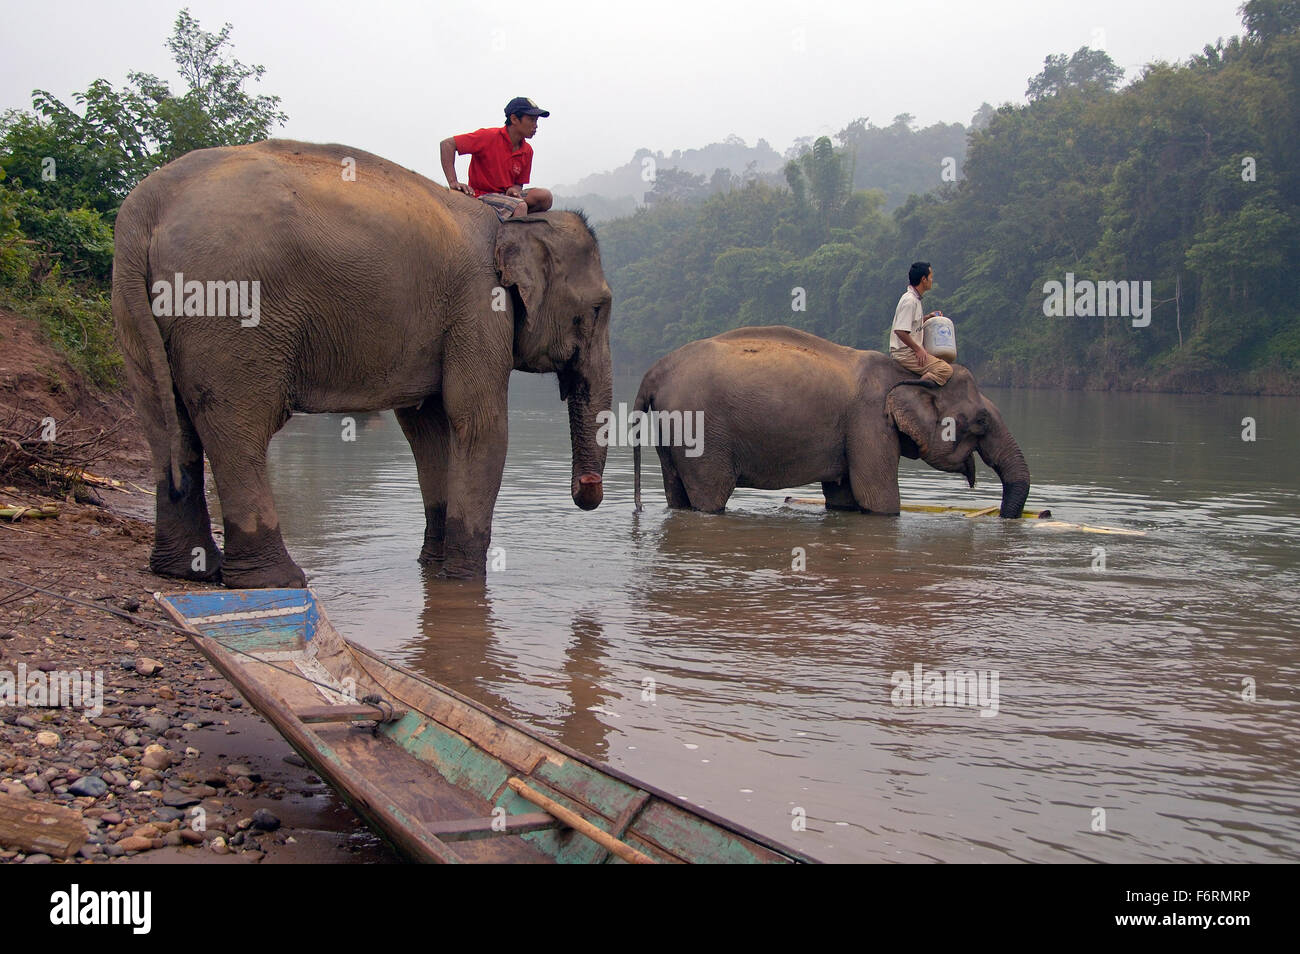 Man on top of an elephant in the Mekong river to wash the mammal Stock Photo